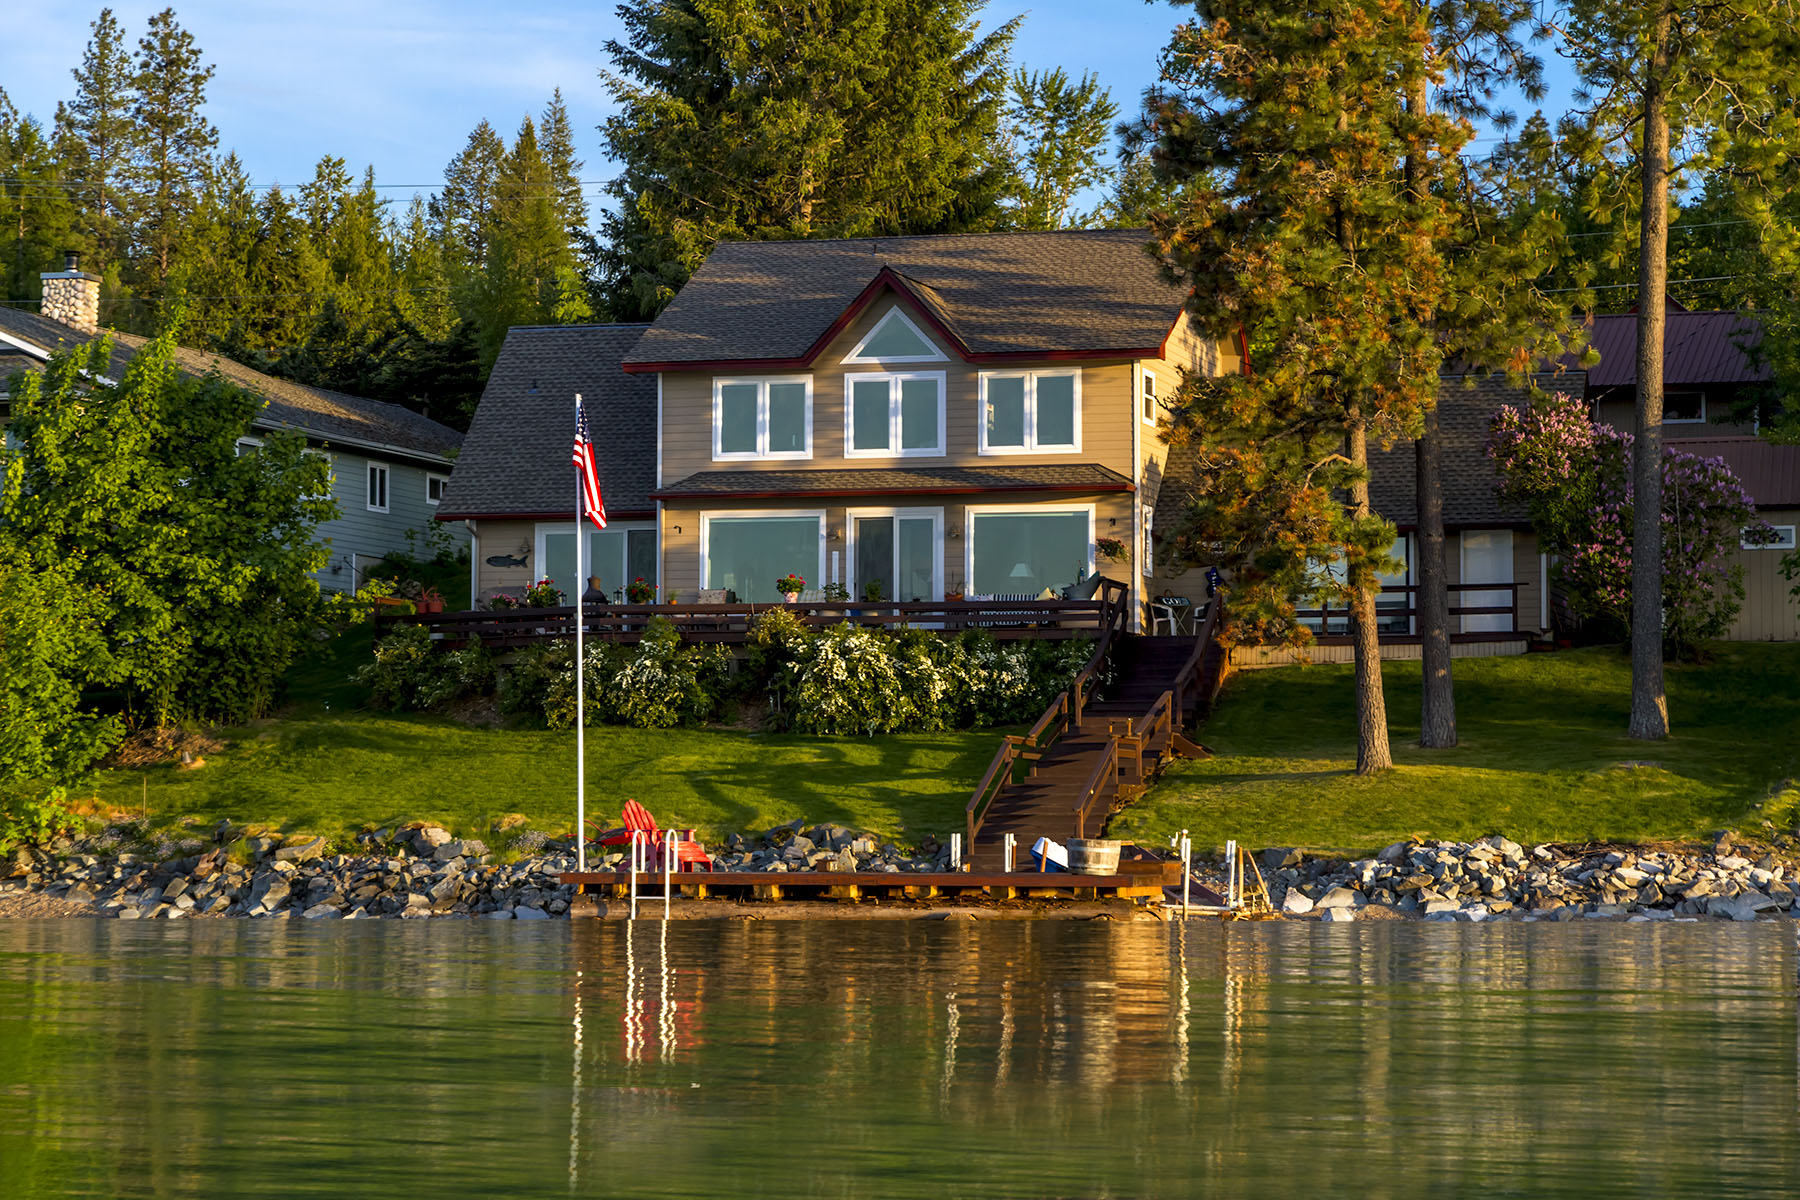 Property For Sale at Waterfront on Pend Oreille River